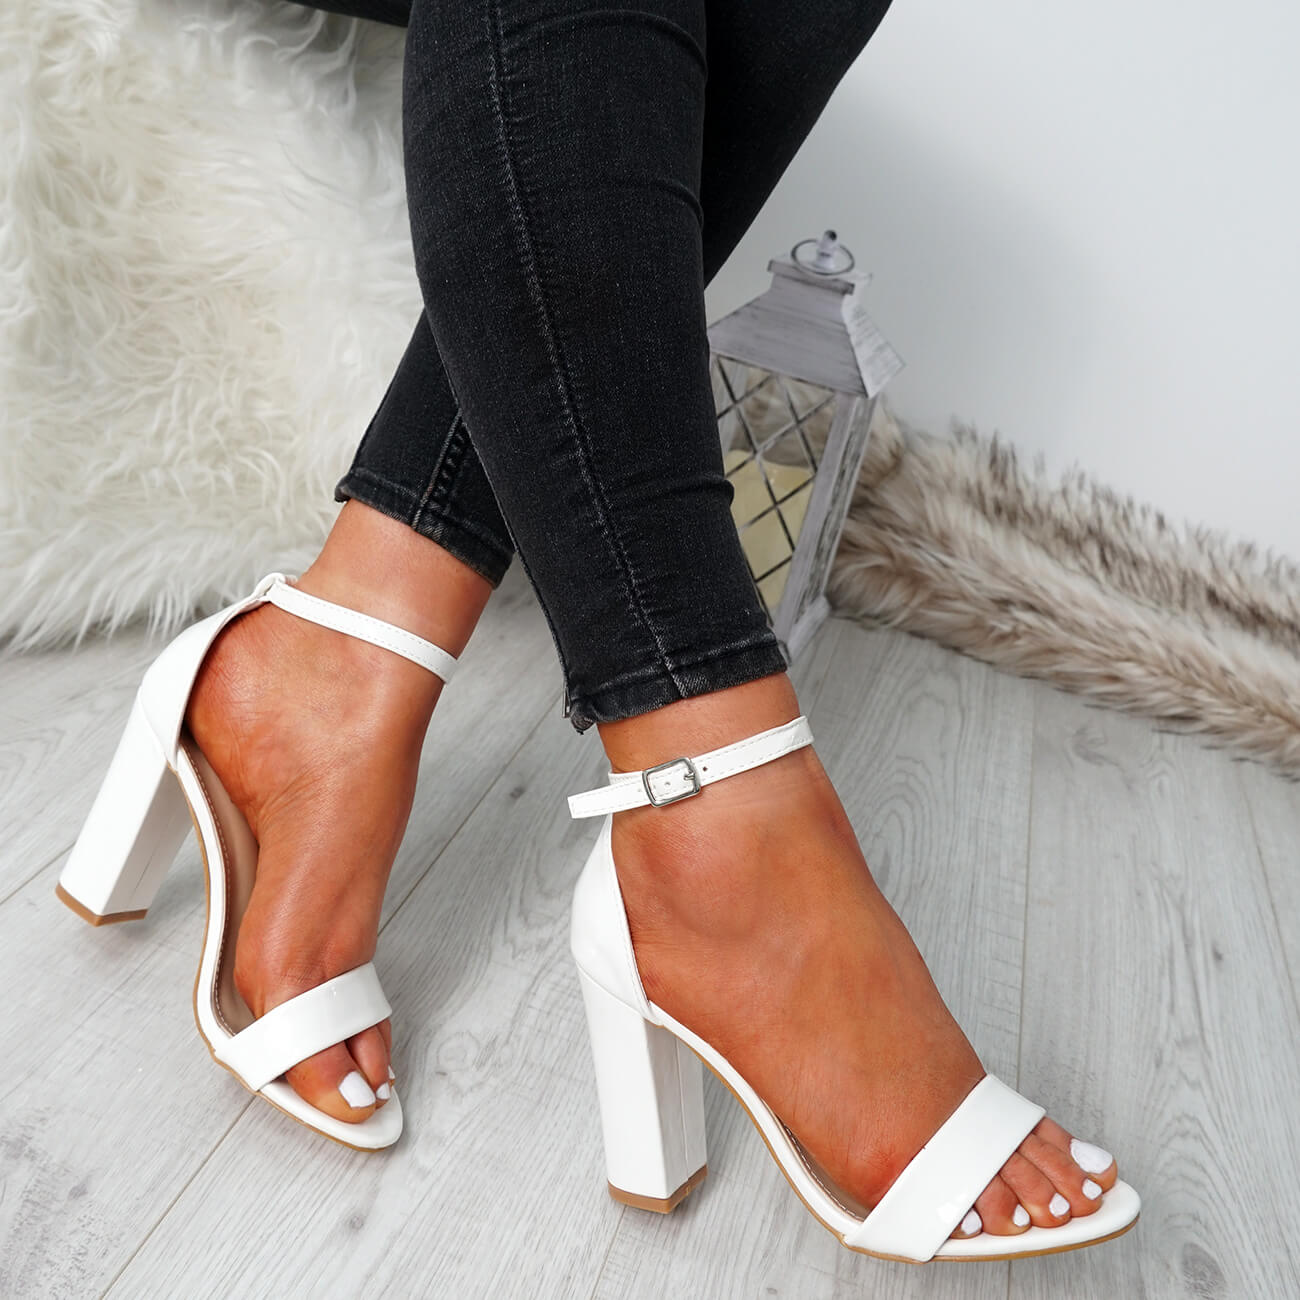 WOMENS-LADIES-ANKLE-STRAP-HIGH-BLOCK-HEEL-SANDALS-PEEP-TOE-PARTY-SHOES-SIZE thumbnail 28